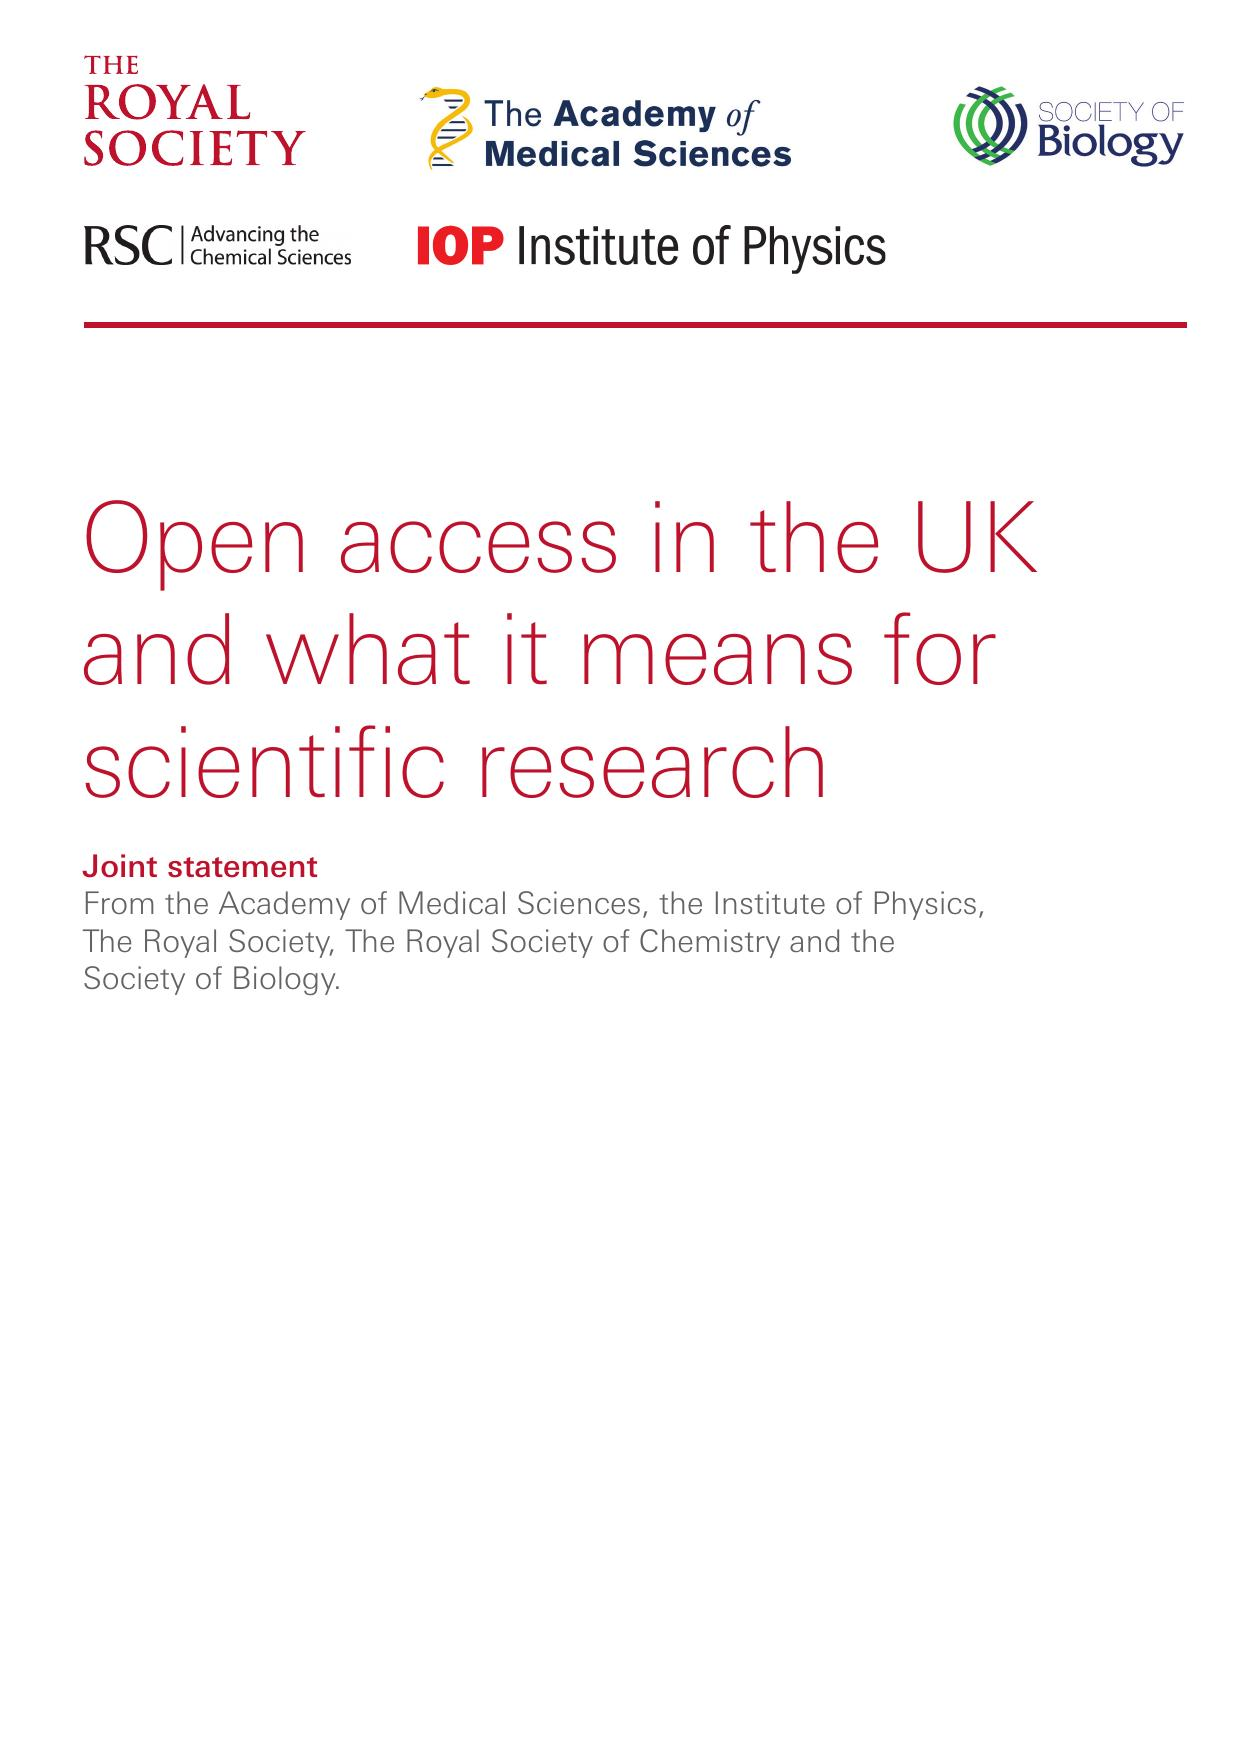 Open access in the UK and what it means for scientific research   The Royal Society